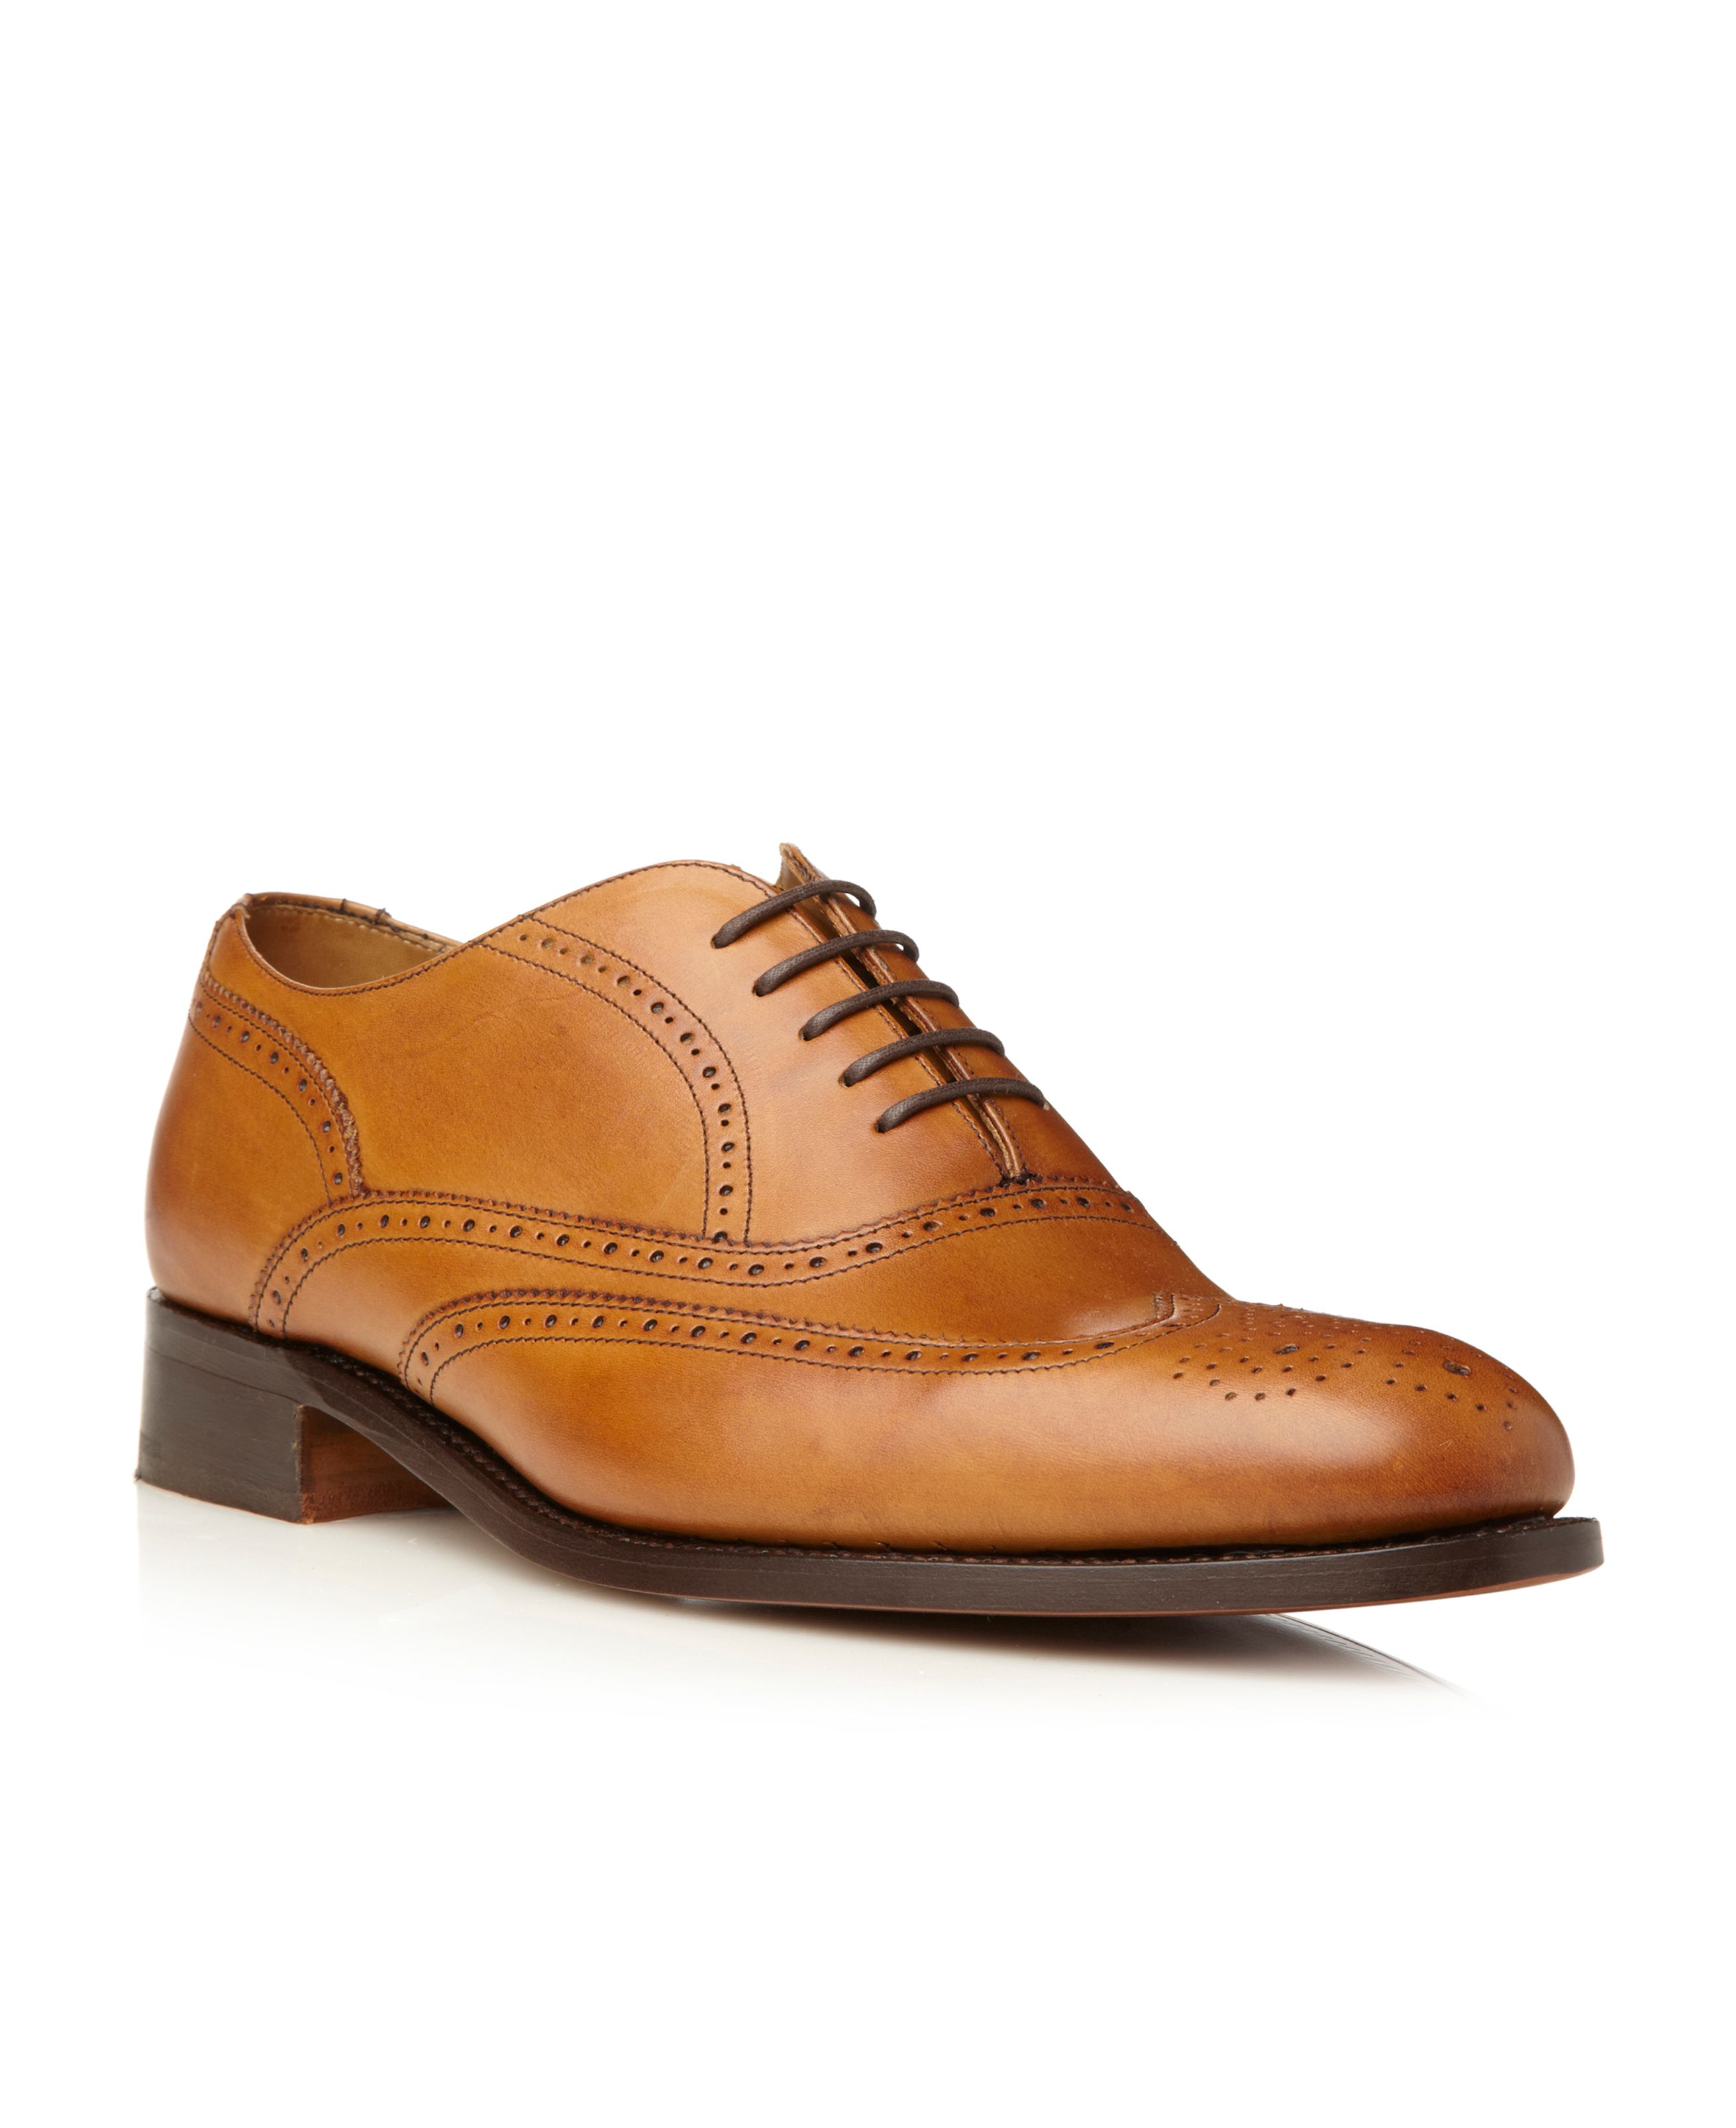 Norton 5 eye wingtip brogues